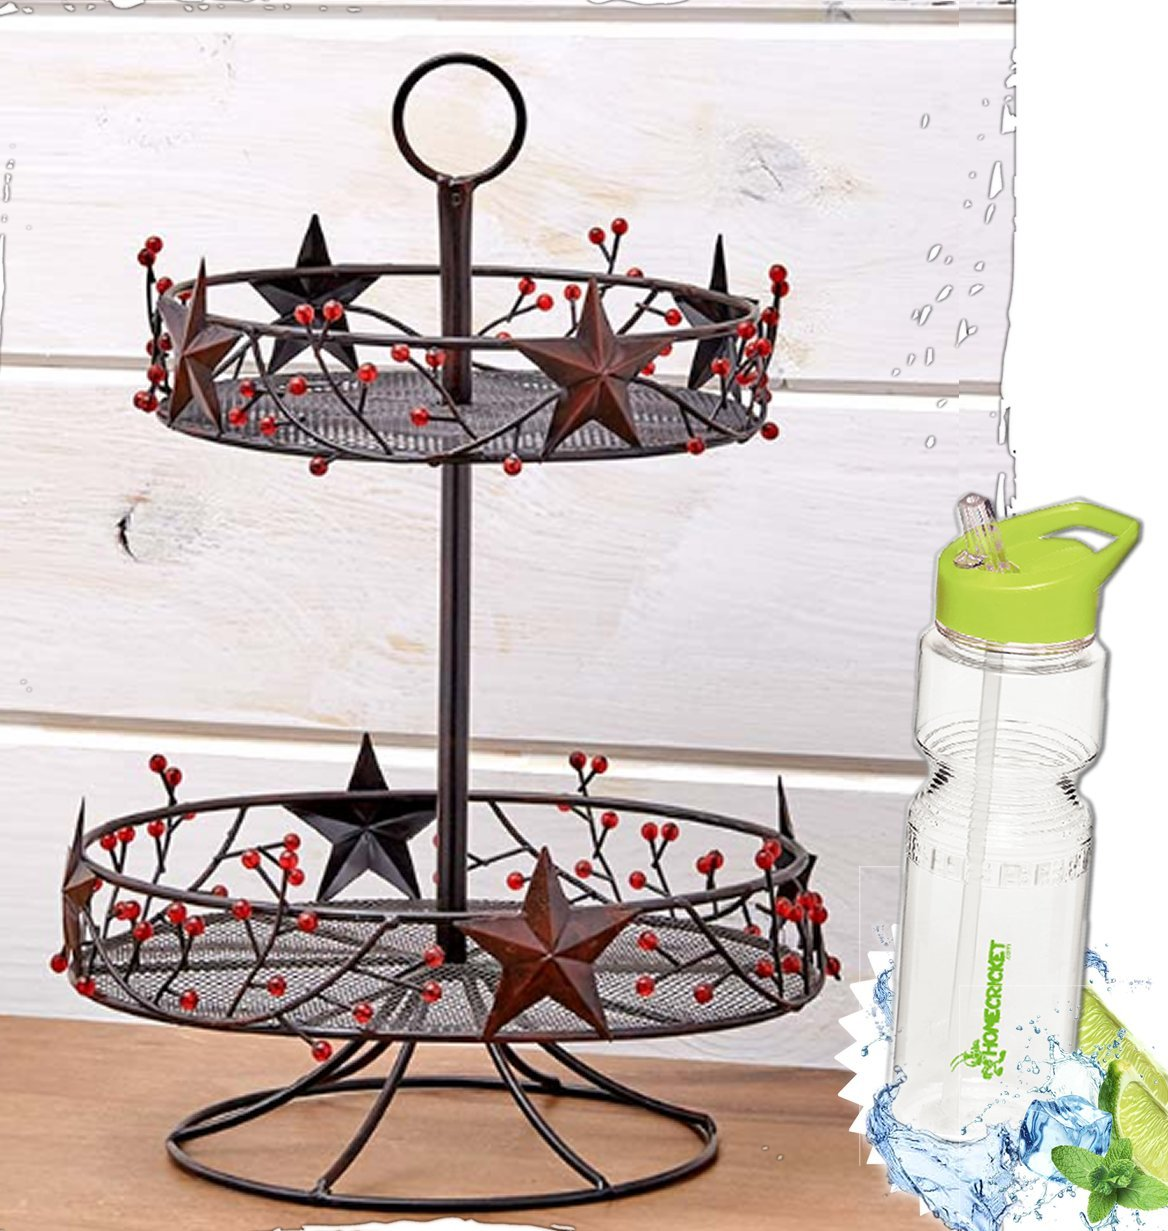 Gift Included- Decorative Stars & Berries Country Style Kitchen Decor Organizers + FREE Bonus Water Bottle by Homecricket (Wall Mount Paper Towel Holder)